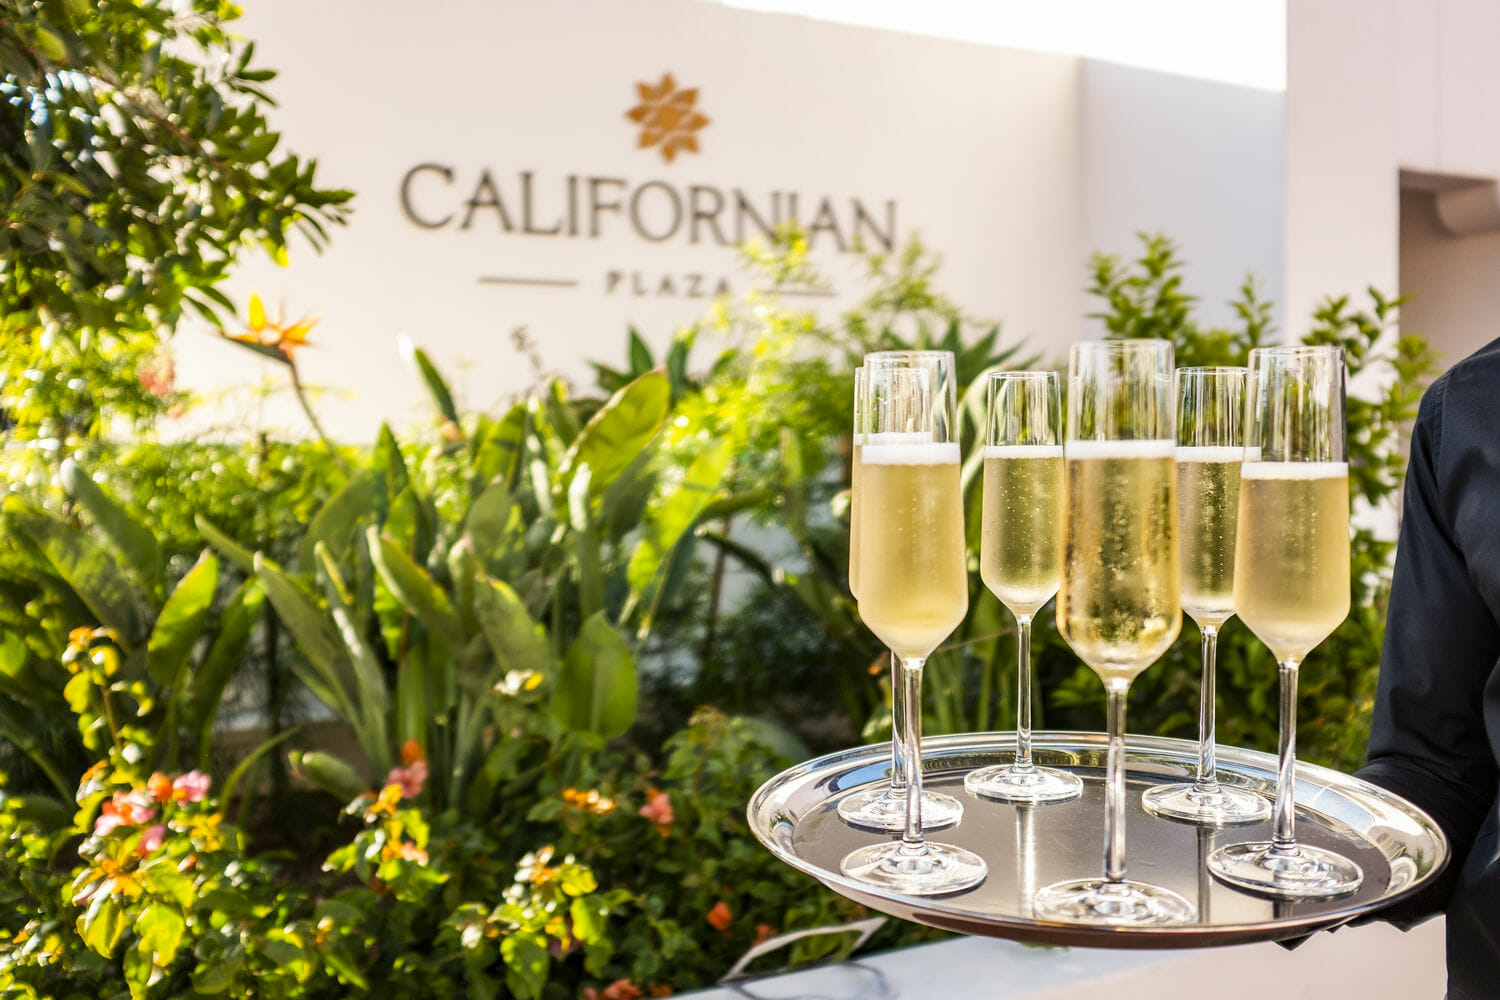 event-photographer-santa-barbara-hotelcalifornian_112